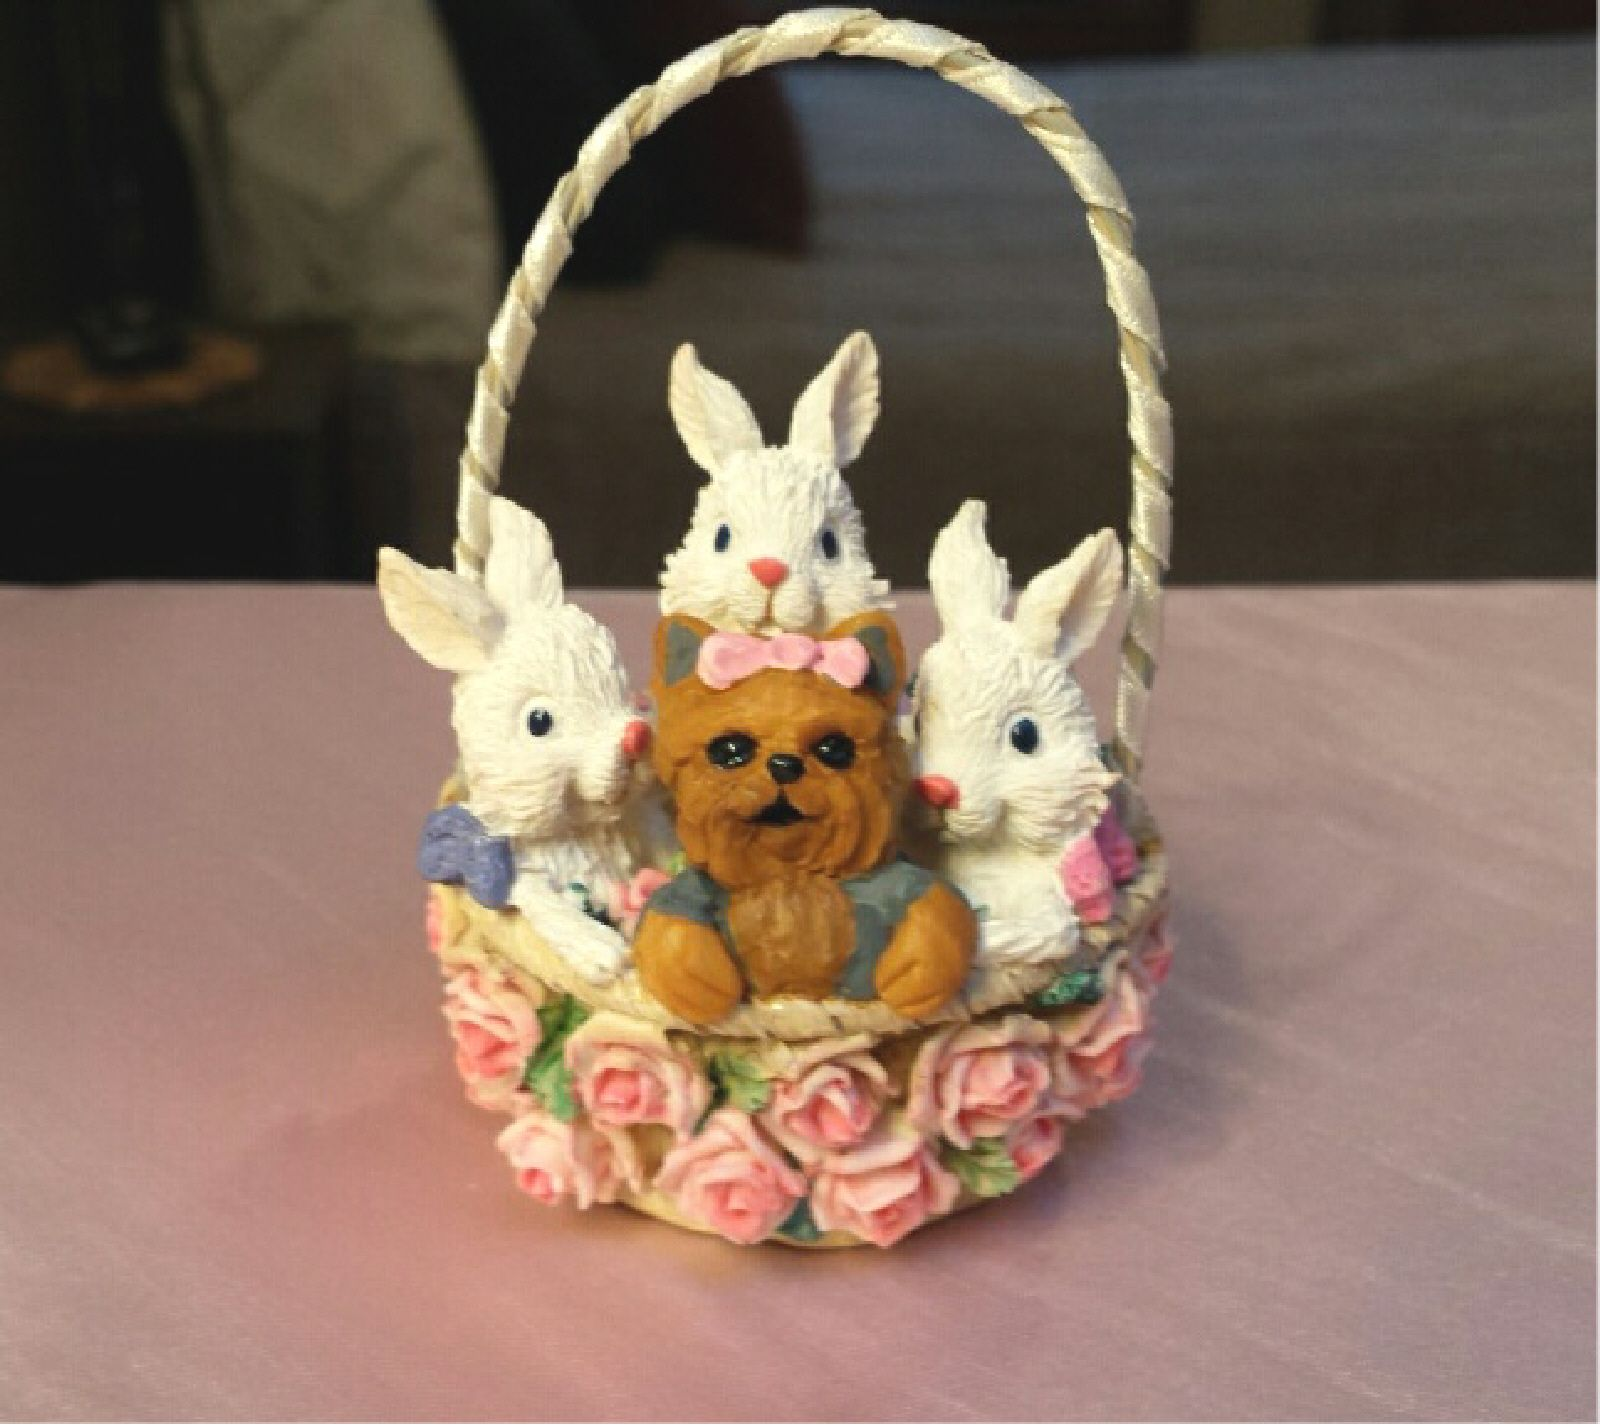 Little Yorkie joins her bunny friends in the basket :-)